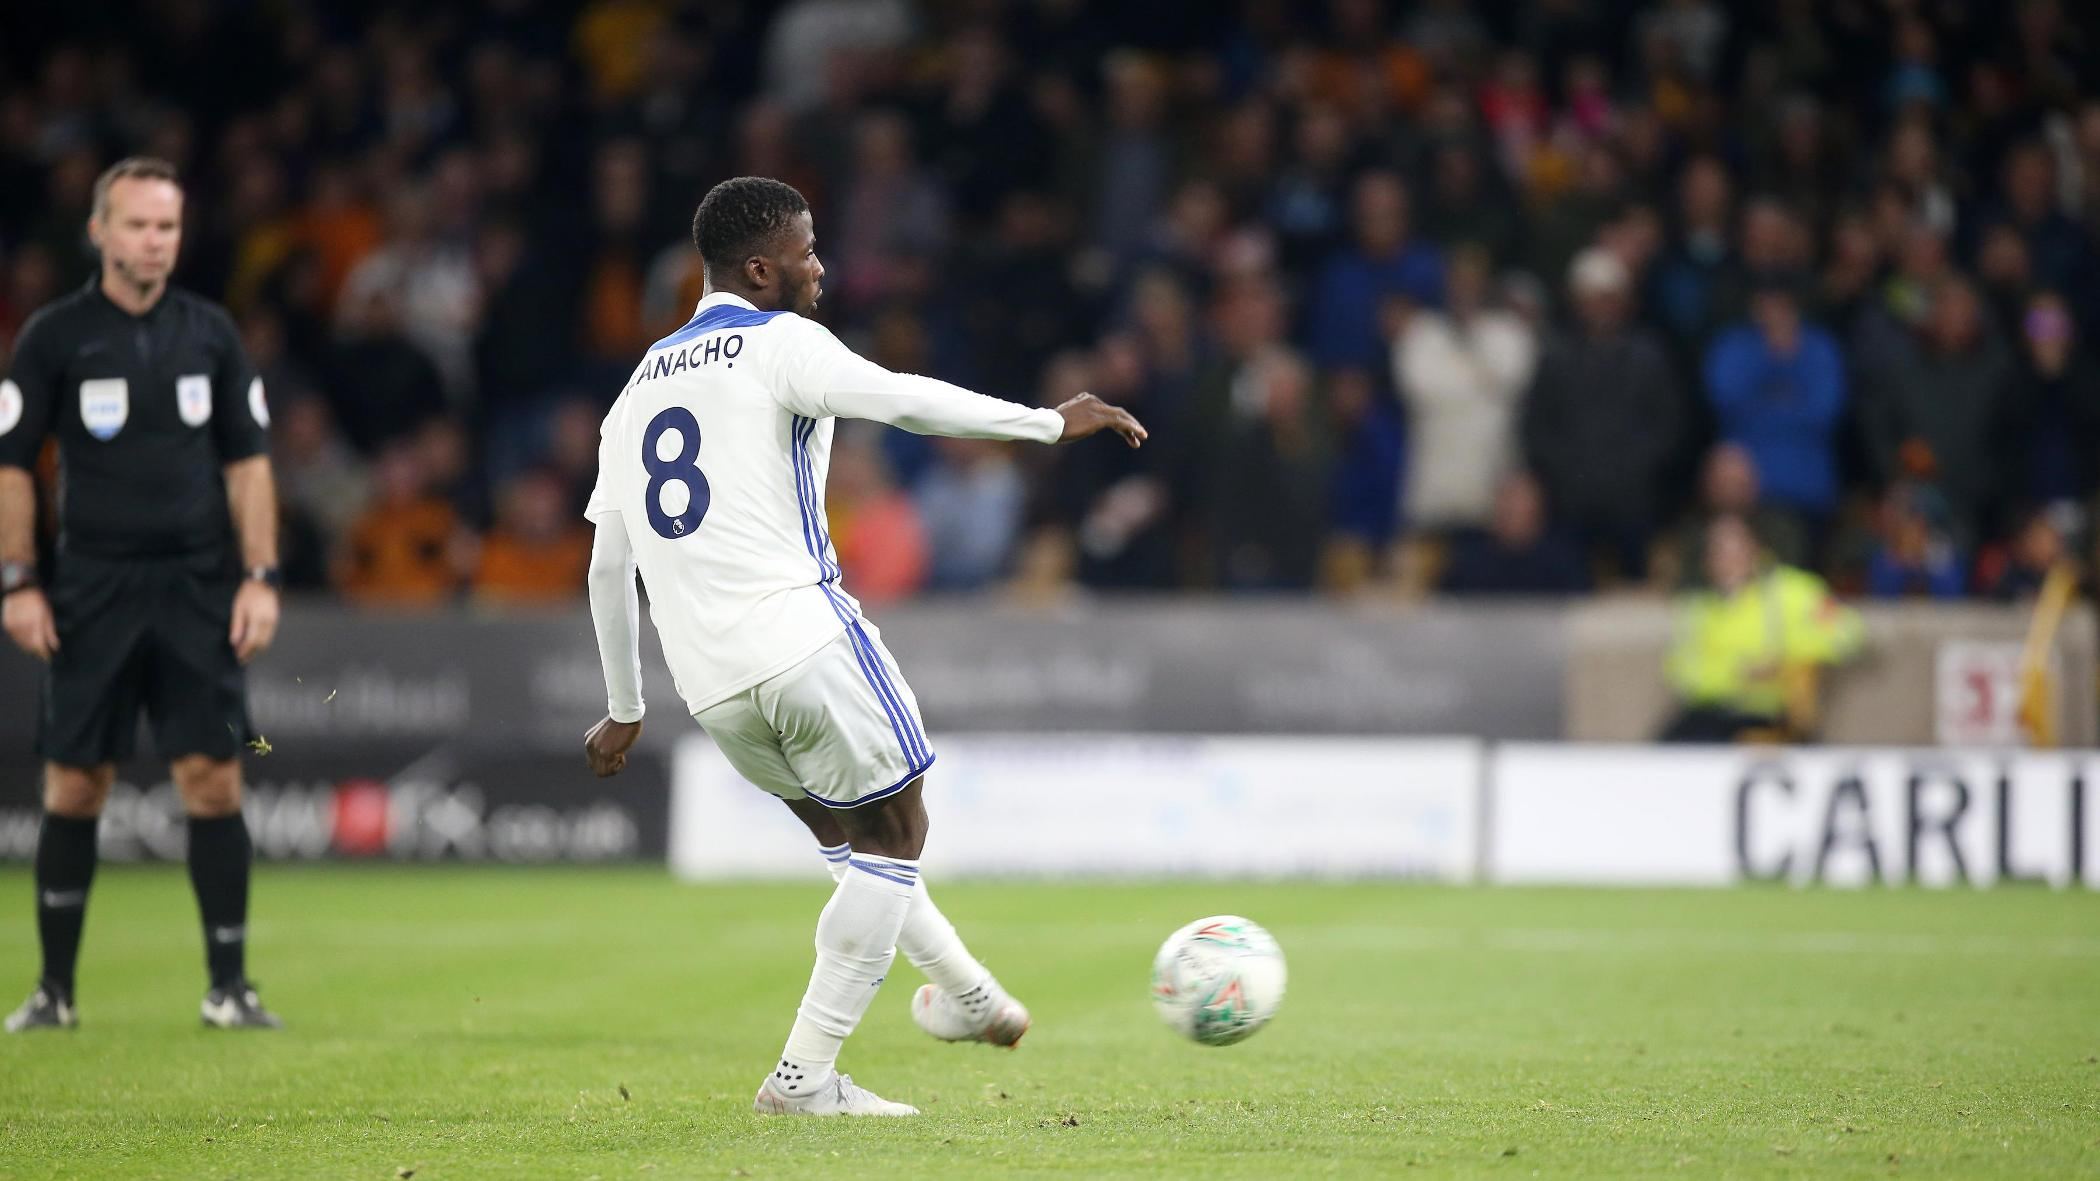 Carabao Cup: Iheanacho Nets Decisive Goal In Leicester's Shootout Win Vs Wolves